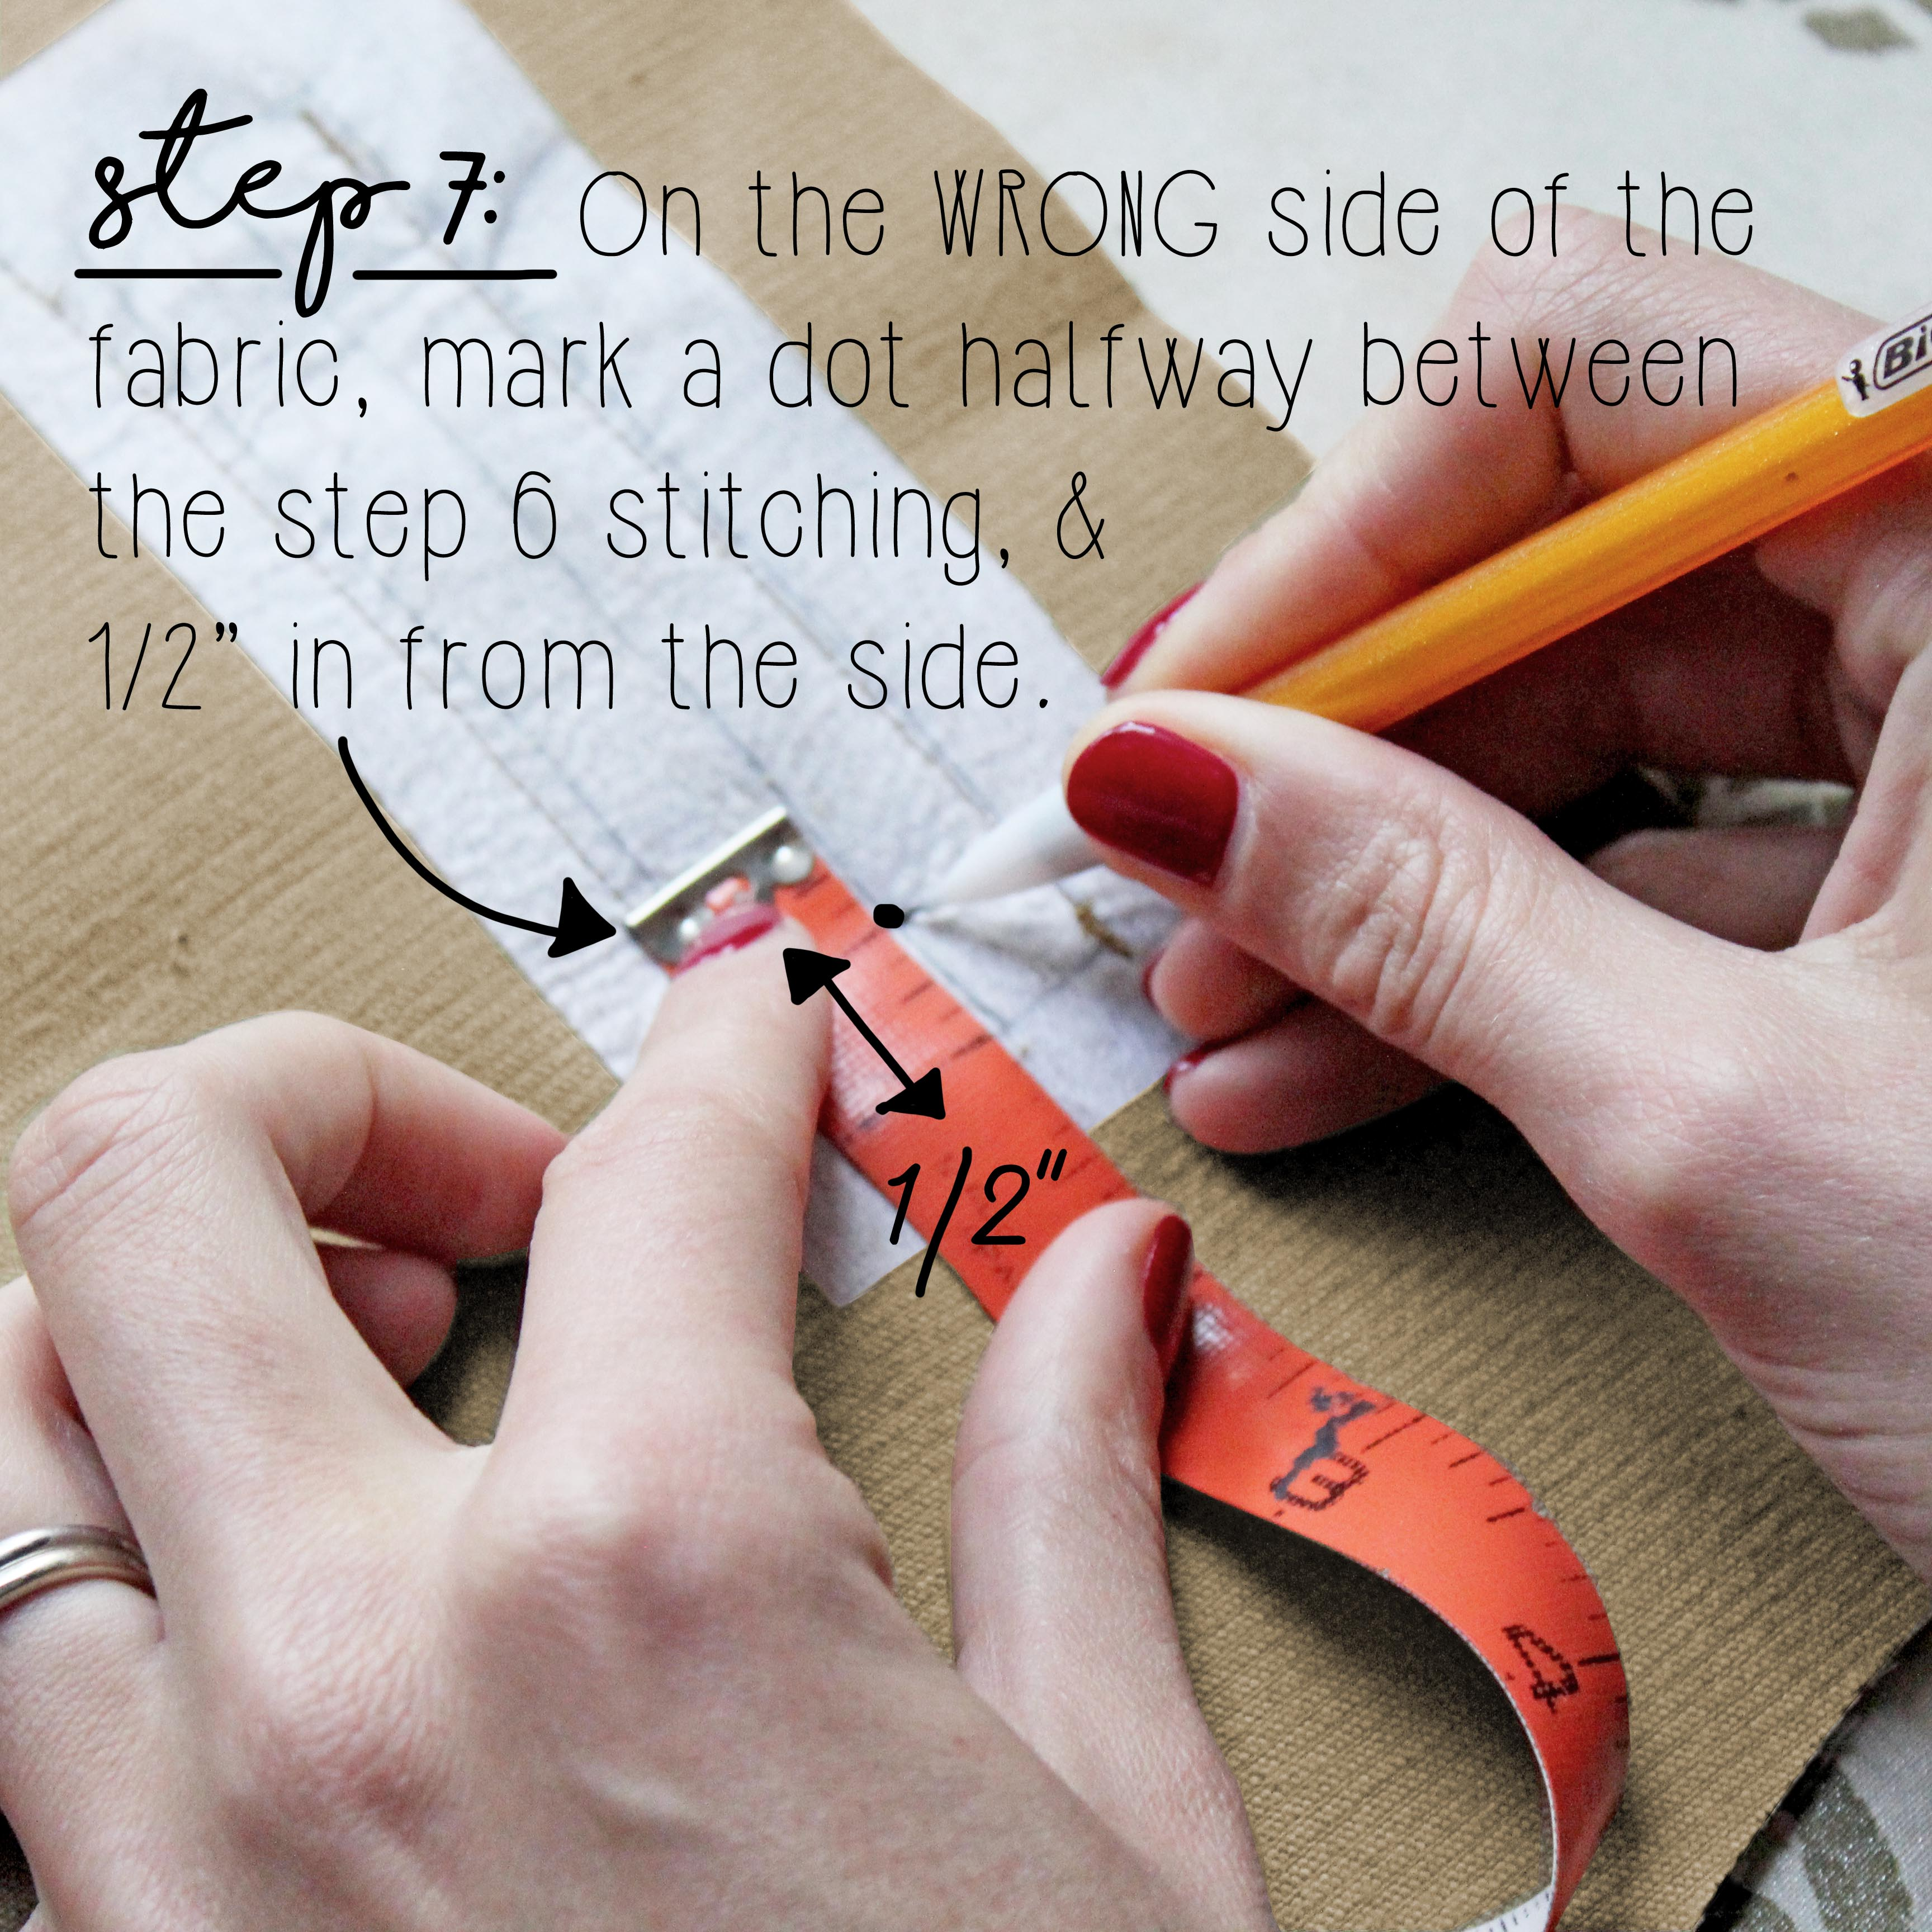 How To Sew A Double Welt Pocket Sewing Tutorial: Step 7